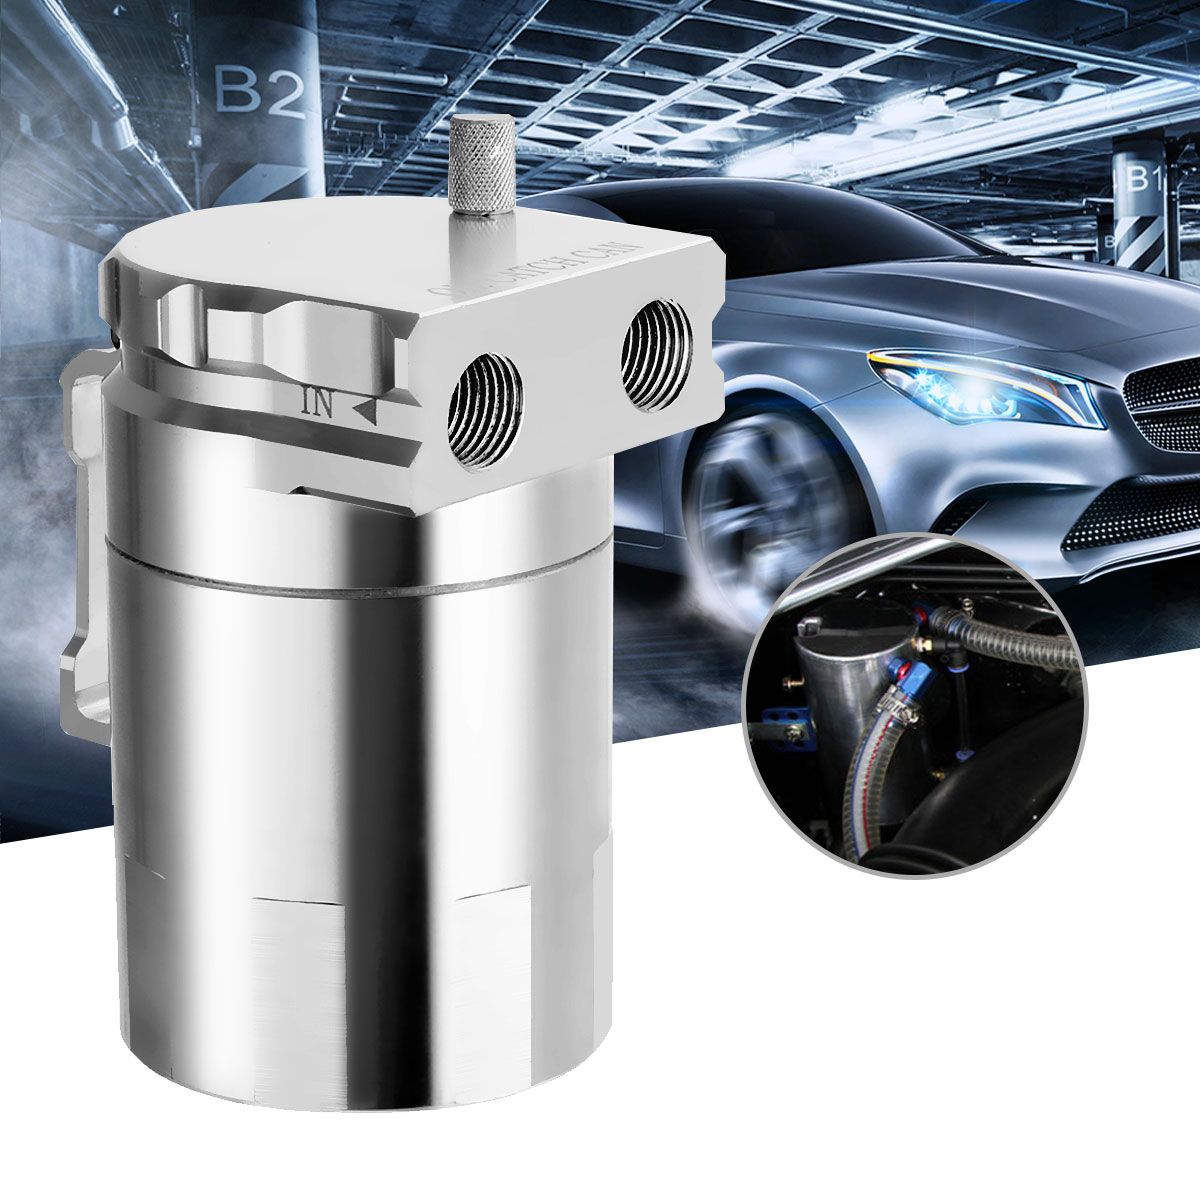 Universal Baffled Aluminium Racing Oil Catch Tank Round Reservoir Can Breather Tank Silver Fuel Turbo Oil Catch Can lzone racing black aluminium fuel surge tank with cap foam inside fuel cell 40l without sensor jr tk21bk